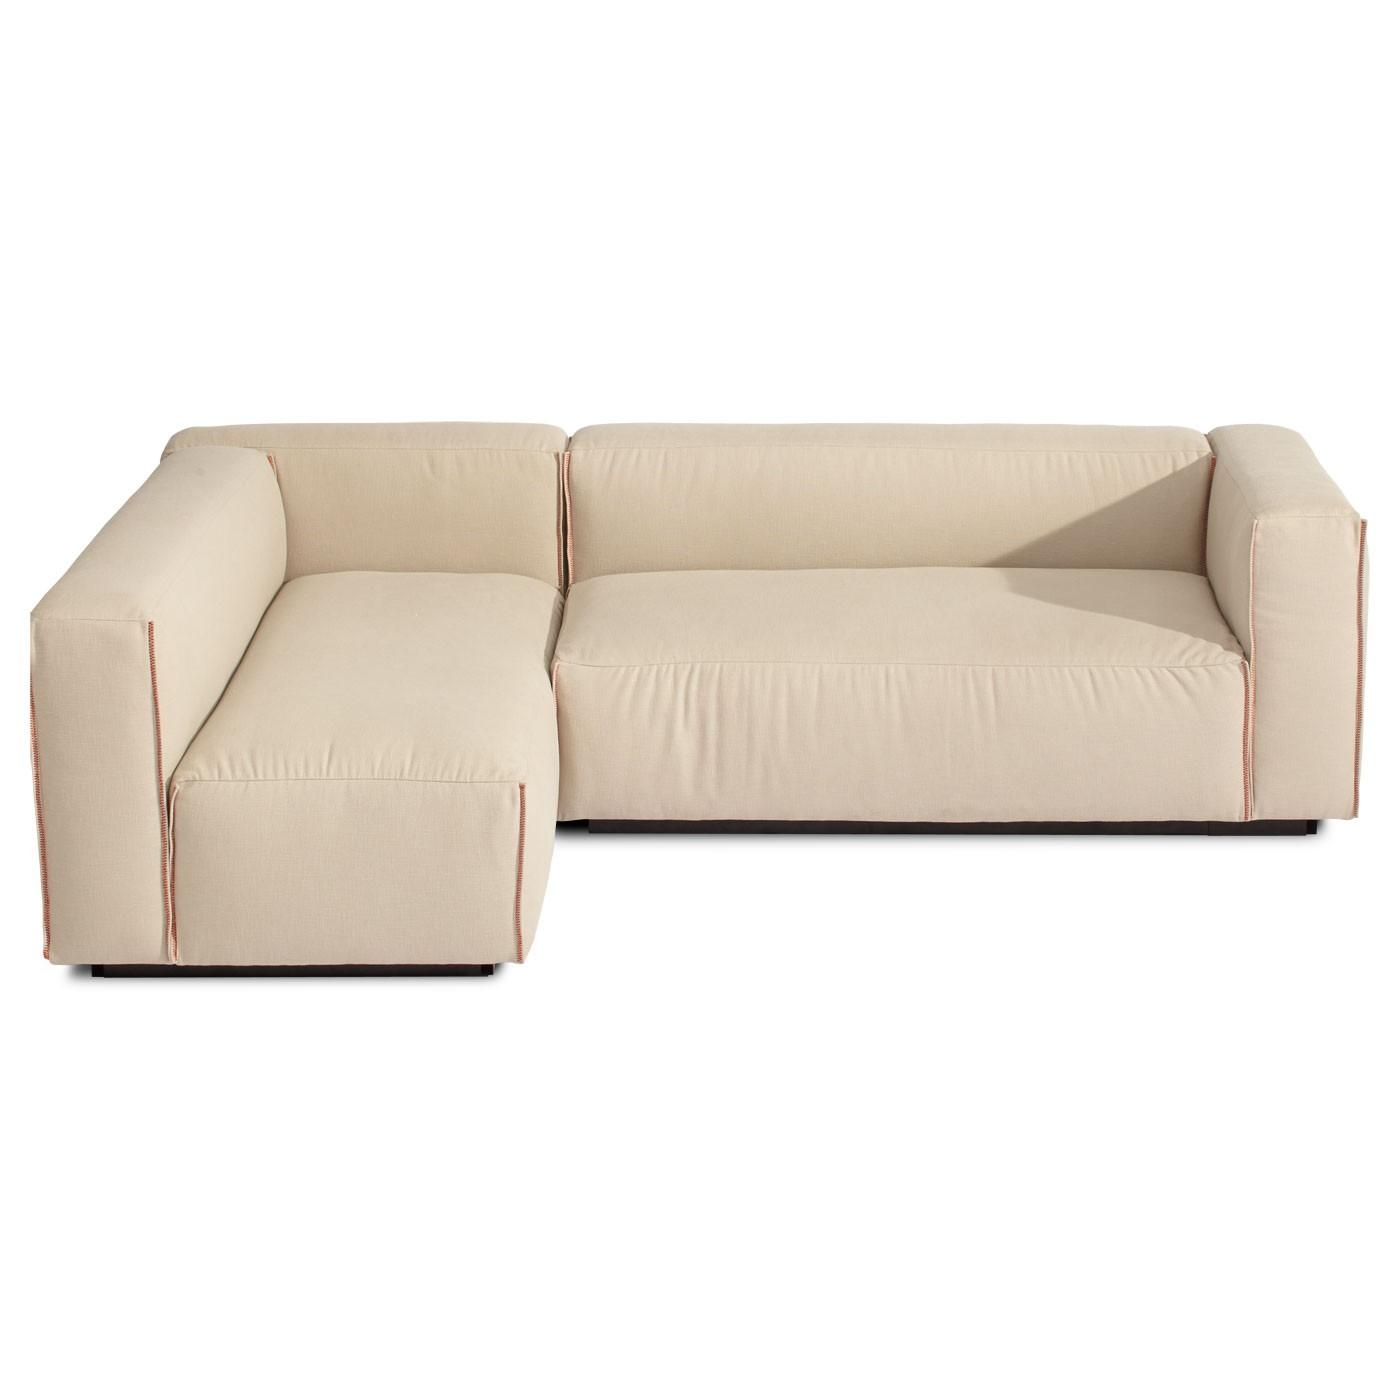 Small Armless Sectional Sofas (Image 17 of 20)